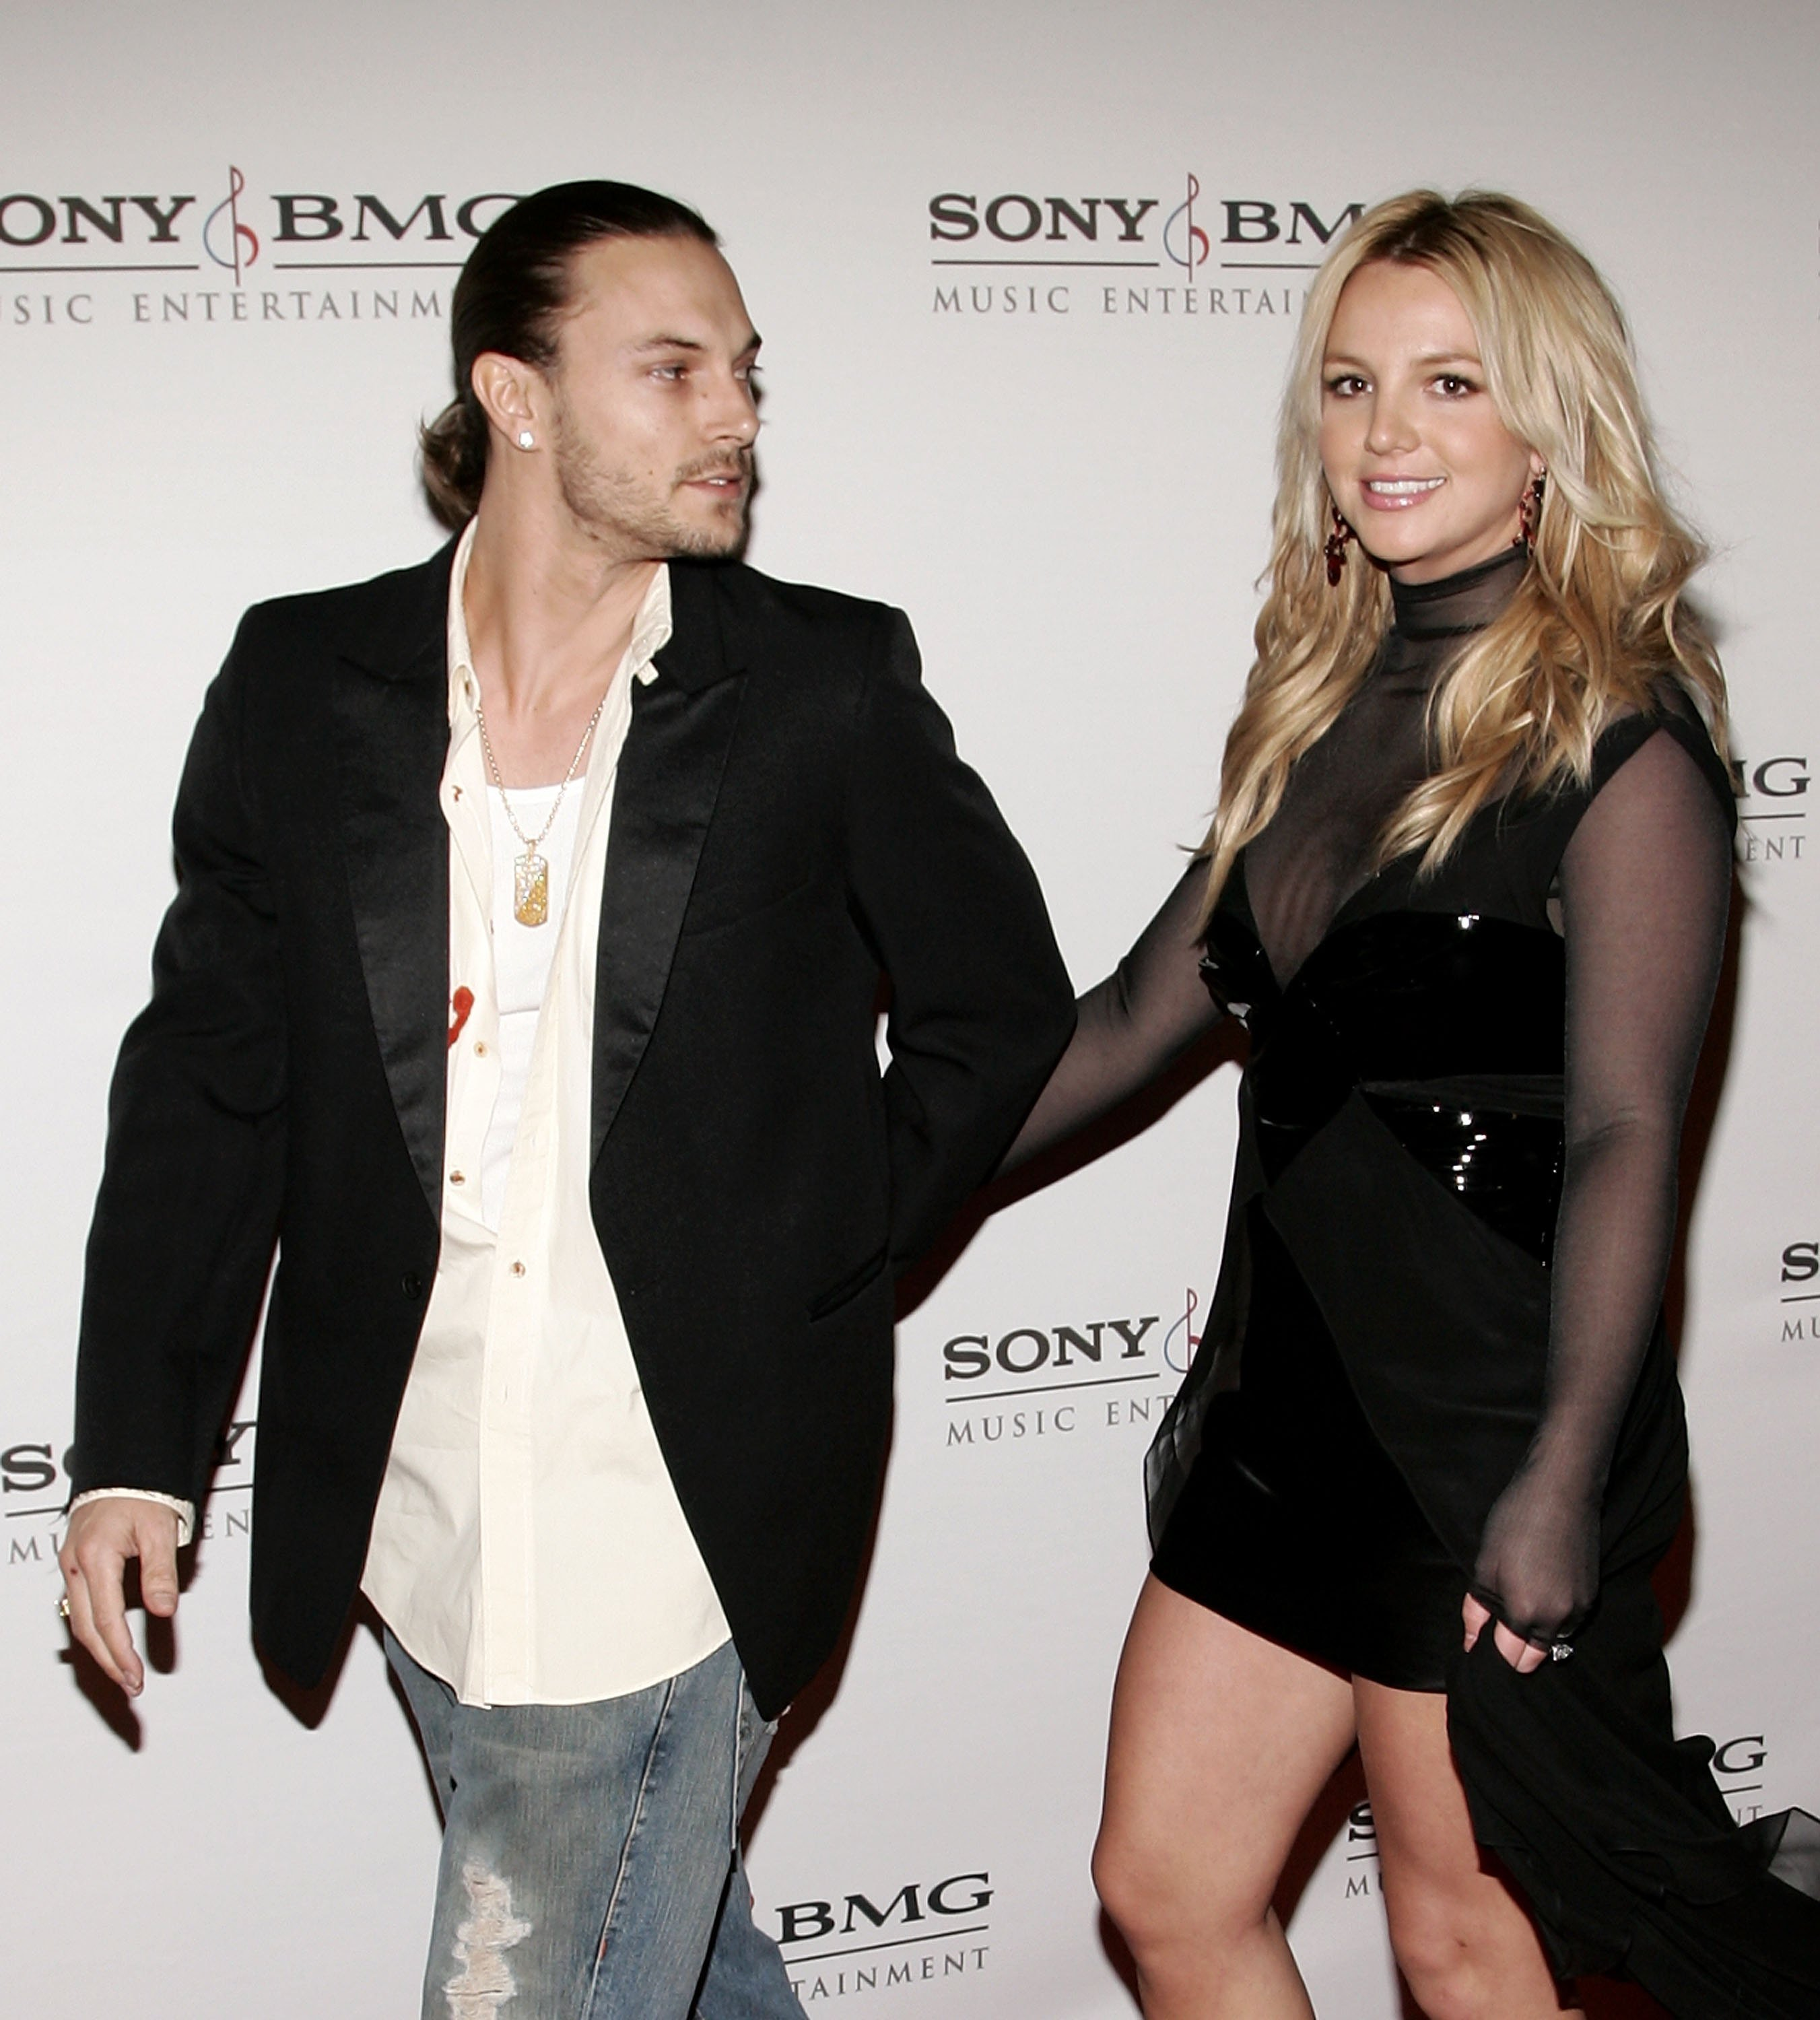 Britney Spears and husband Kevin Federline arrive at the SONY BMG Grammy Party held at The Hollywood Roosevelt Hotel on February 8, 2006 in Hollywood, California. | Photo: GettyImages